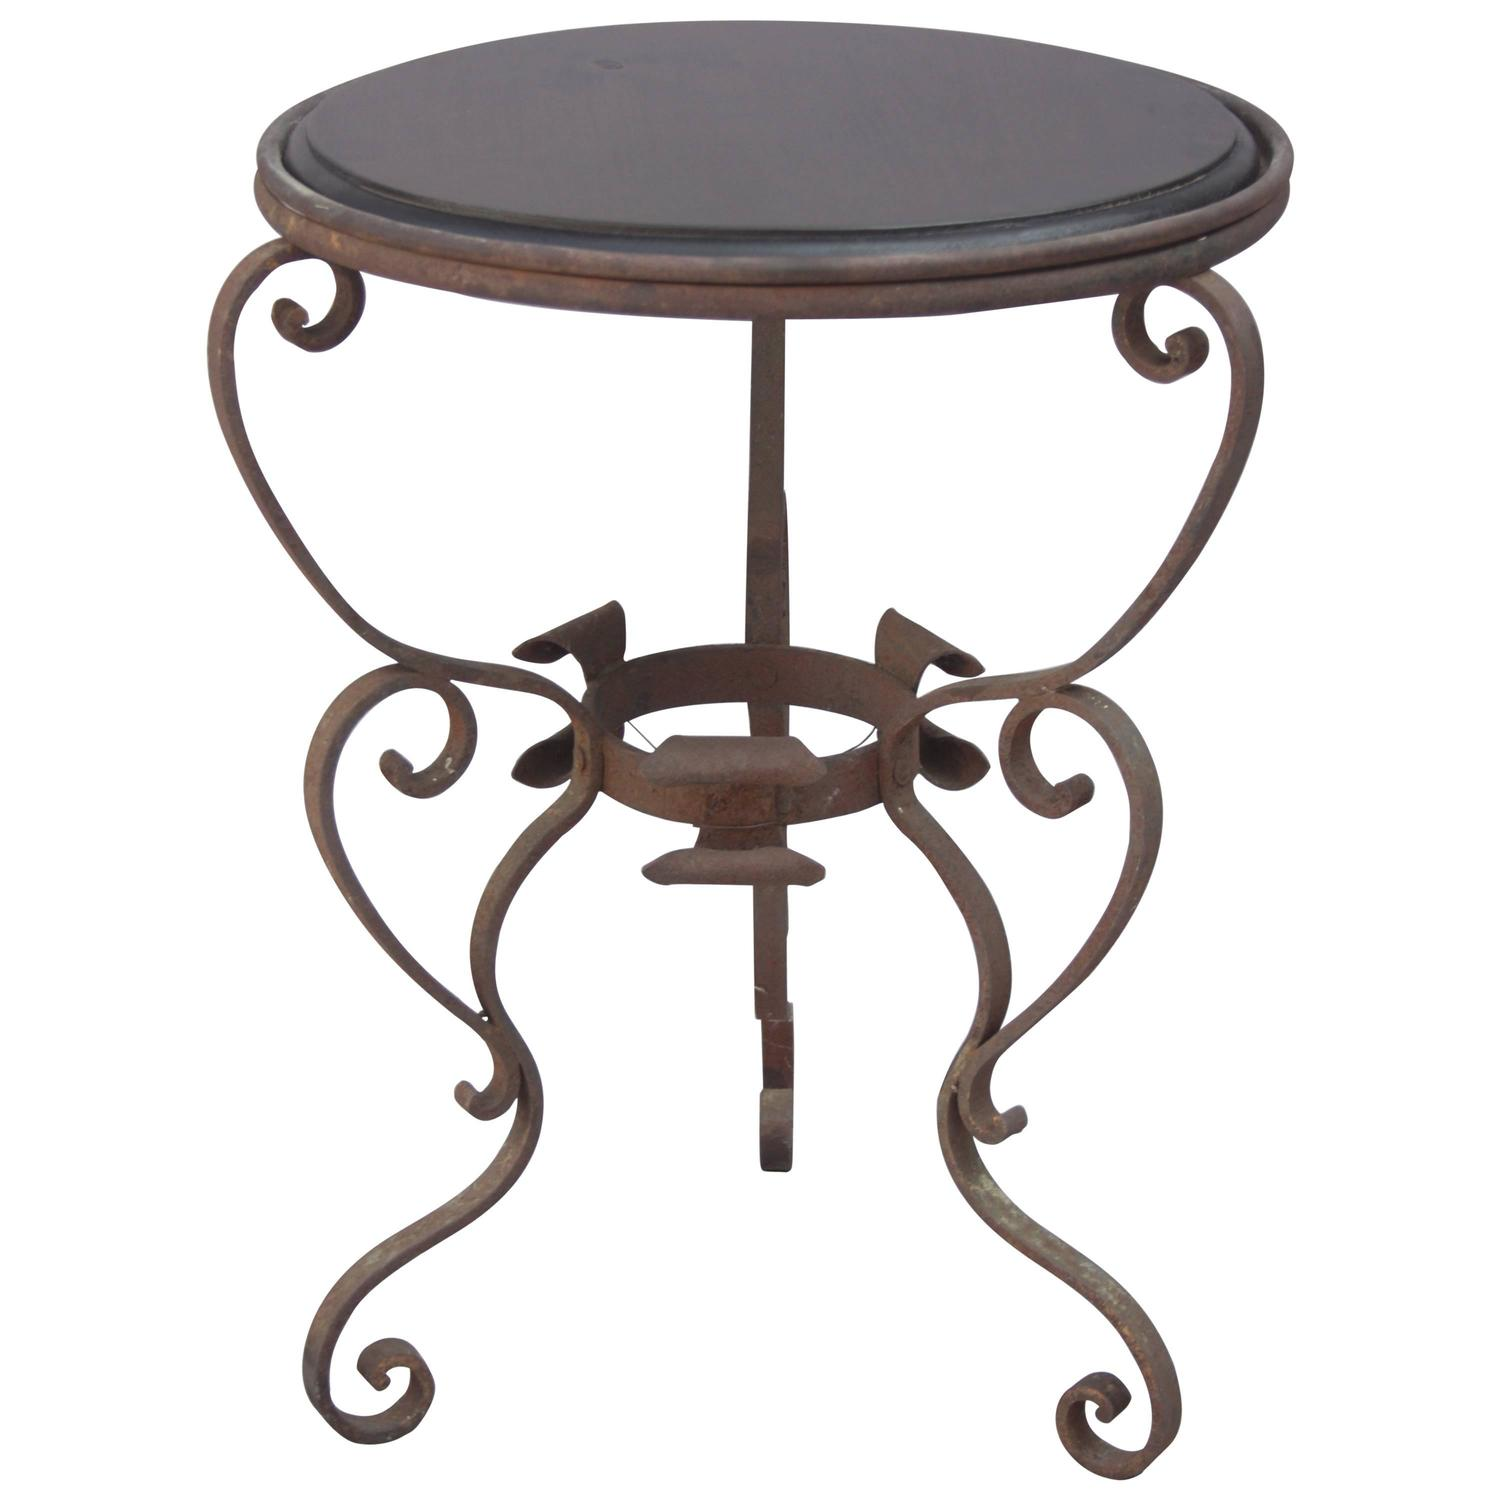 1920s Wrought Iron Side Table For Sale at 1stdibs : 5366633z from www.1stdibs.com size 1500 x 1500 jpeg 77kB